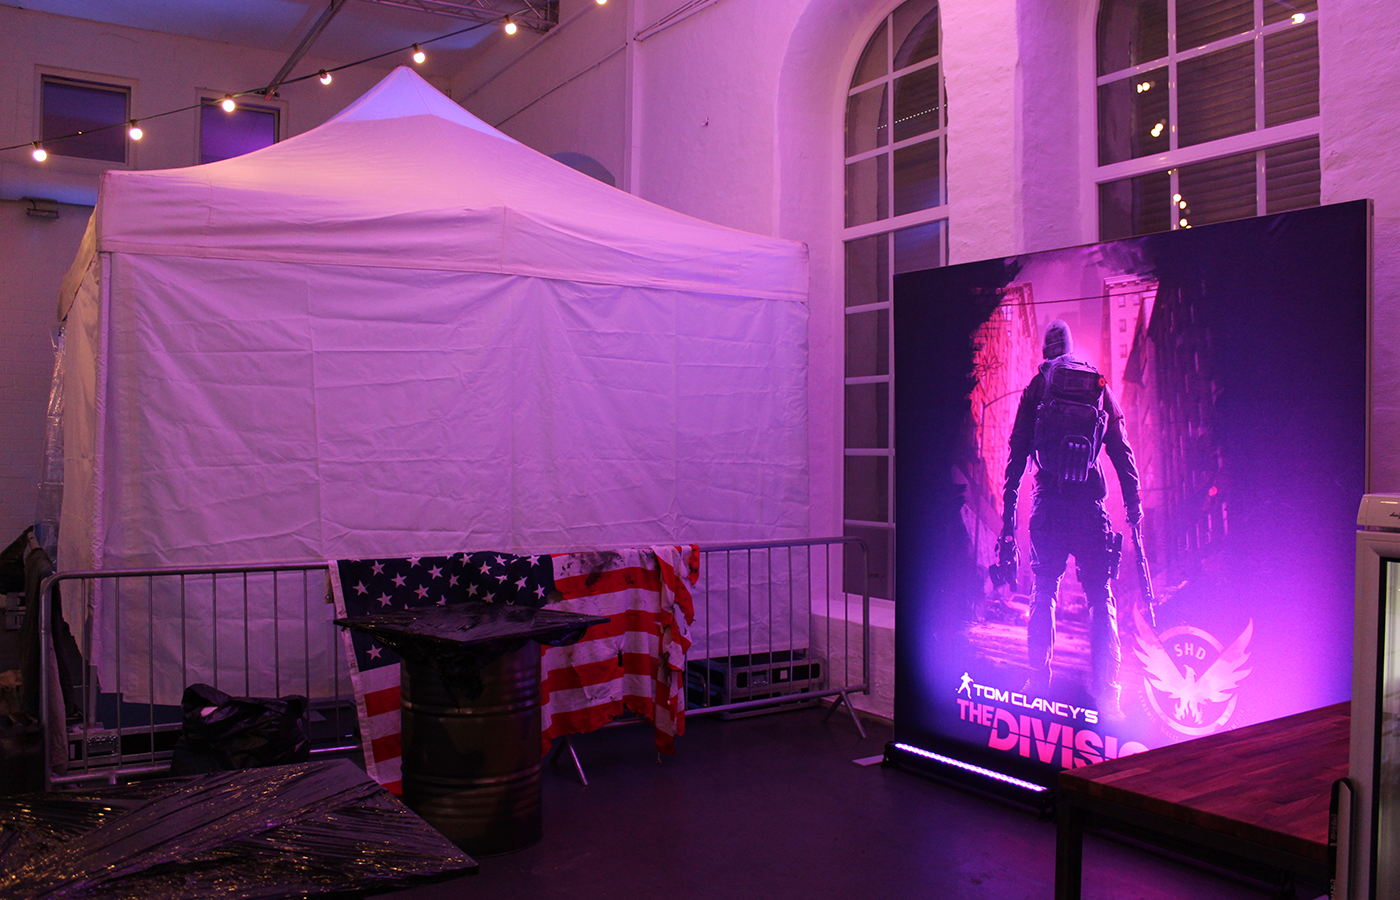 Ubisoft – The Division Release Event